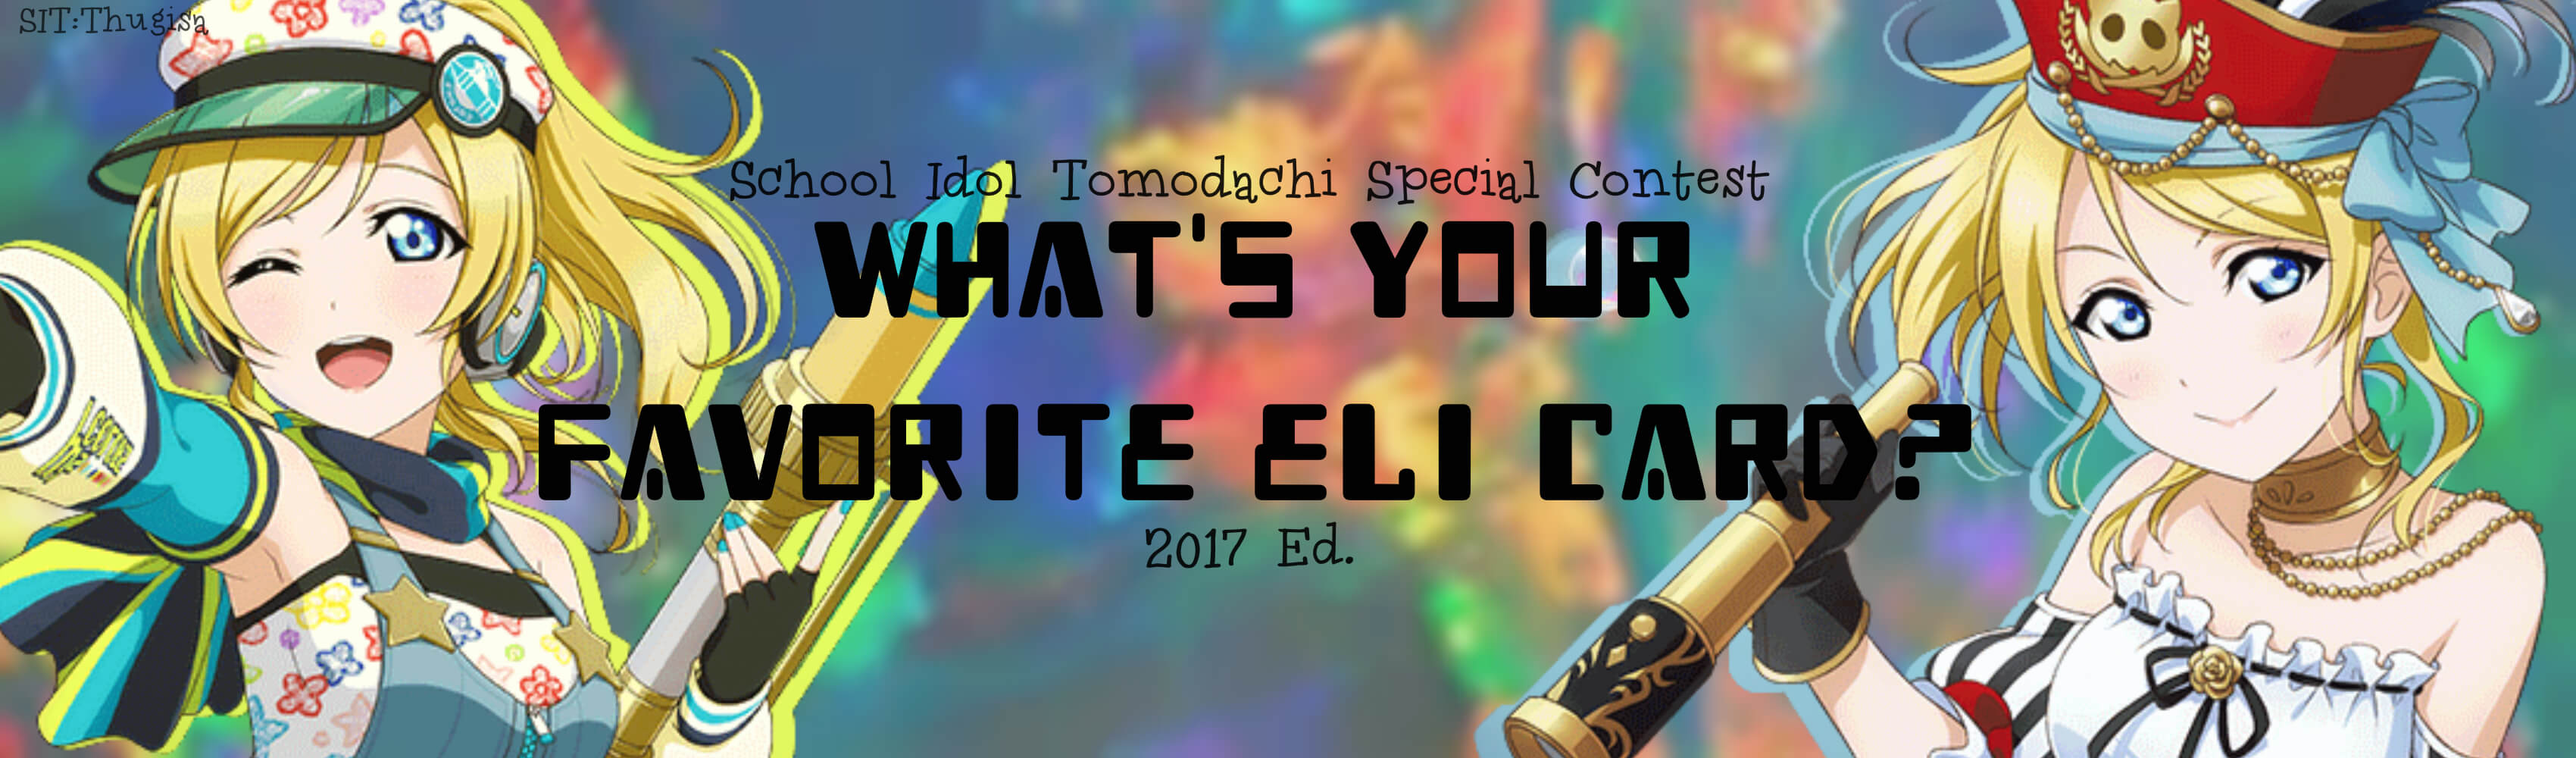 What's your favorite Eli card? 2017 ed.